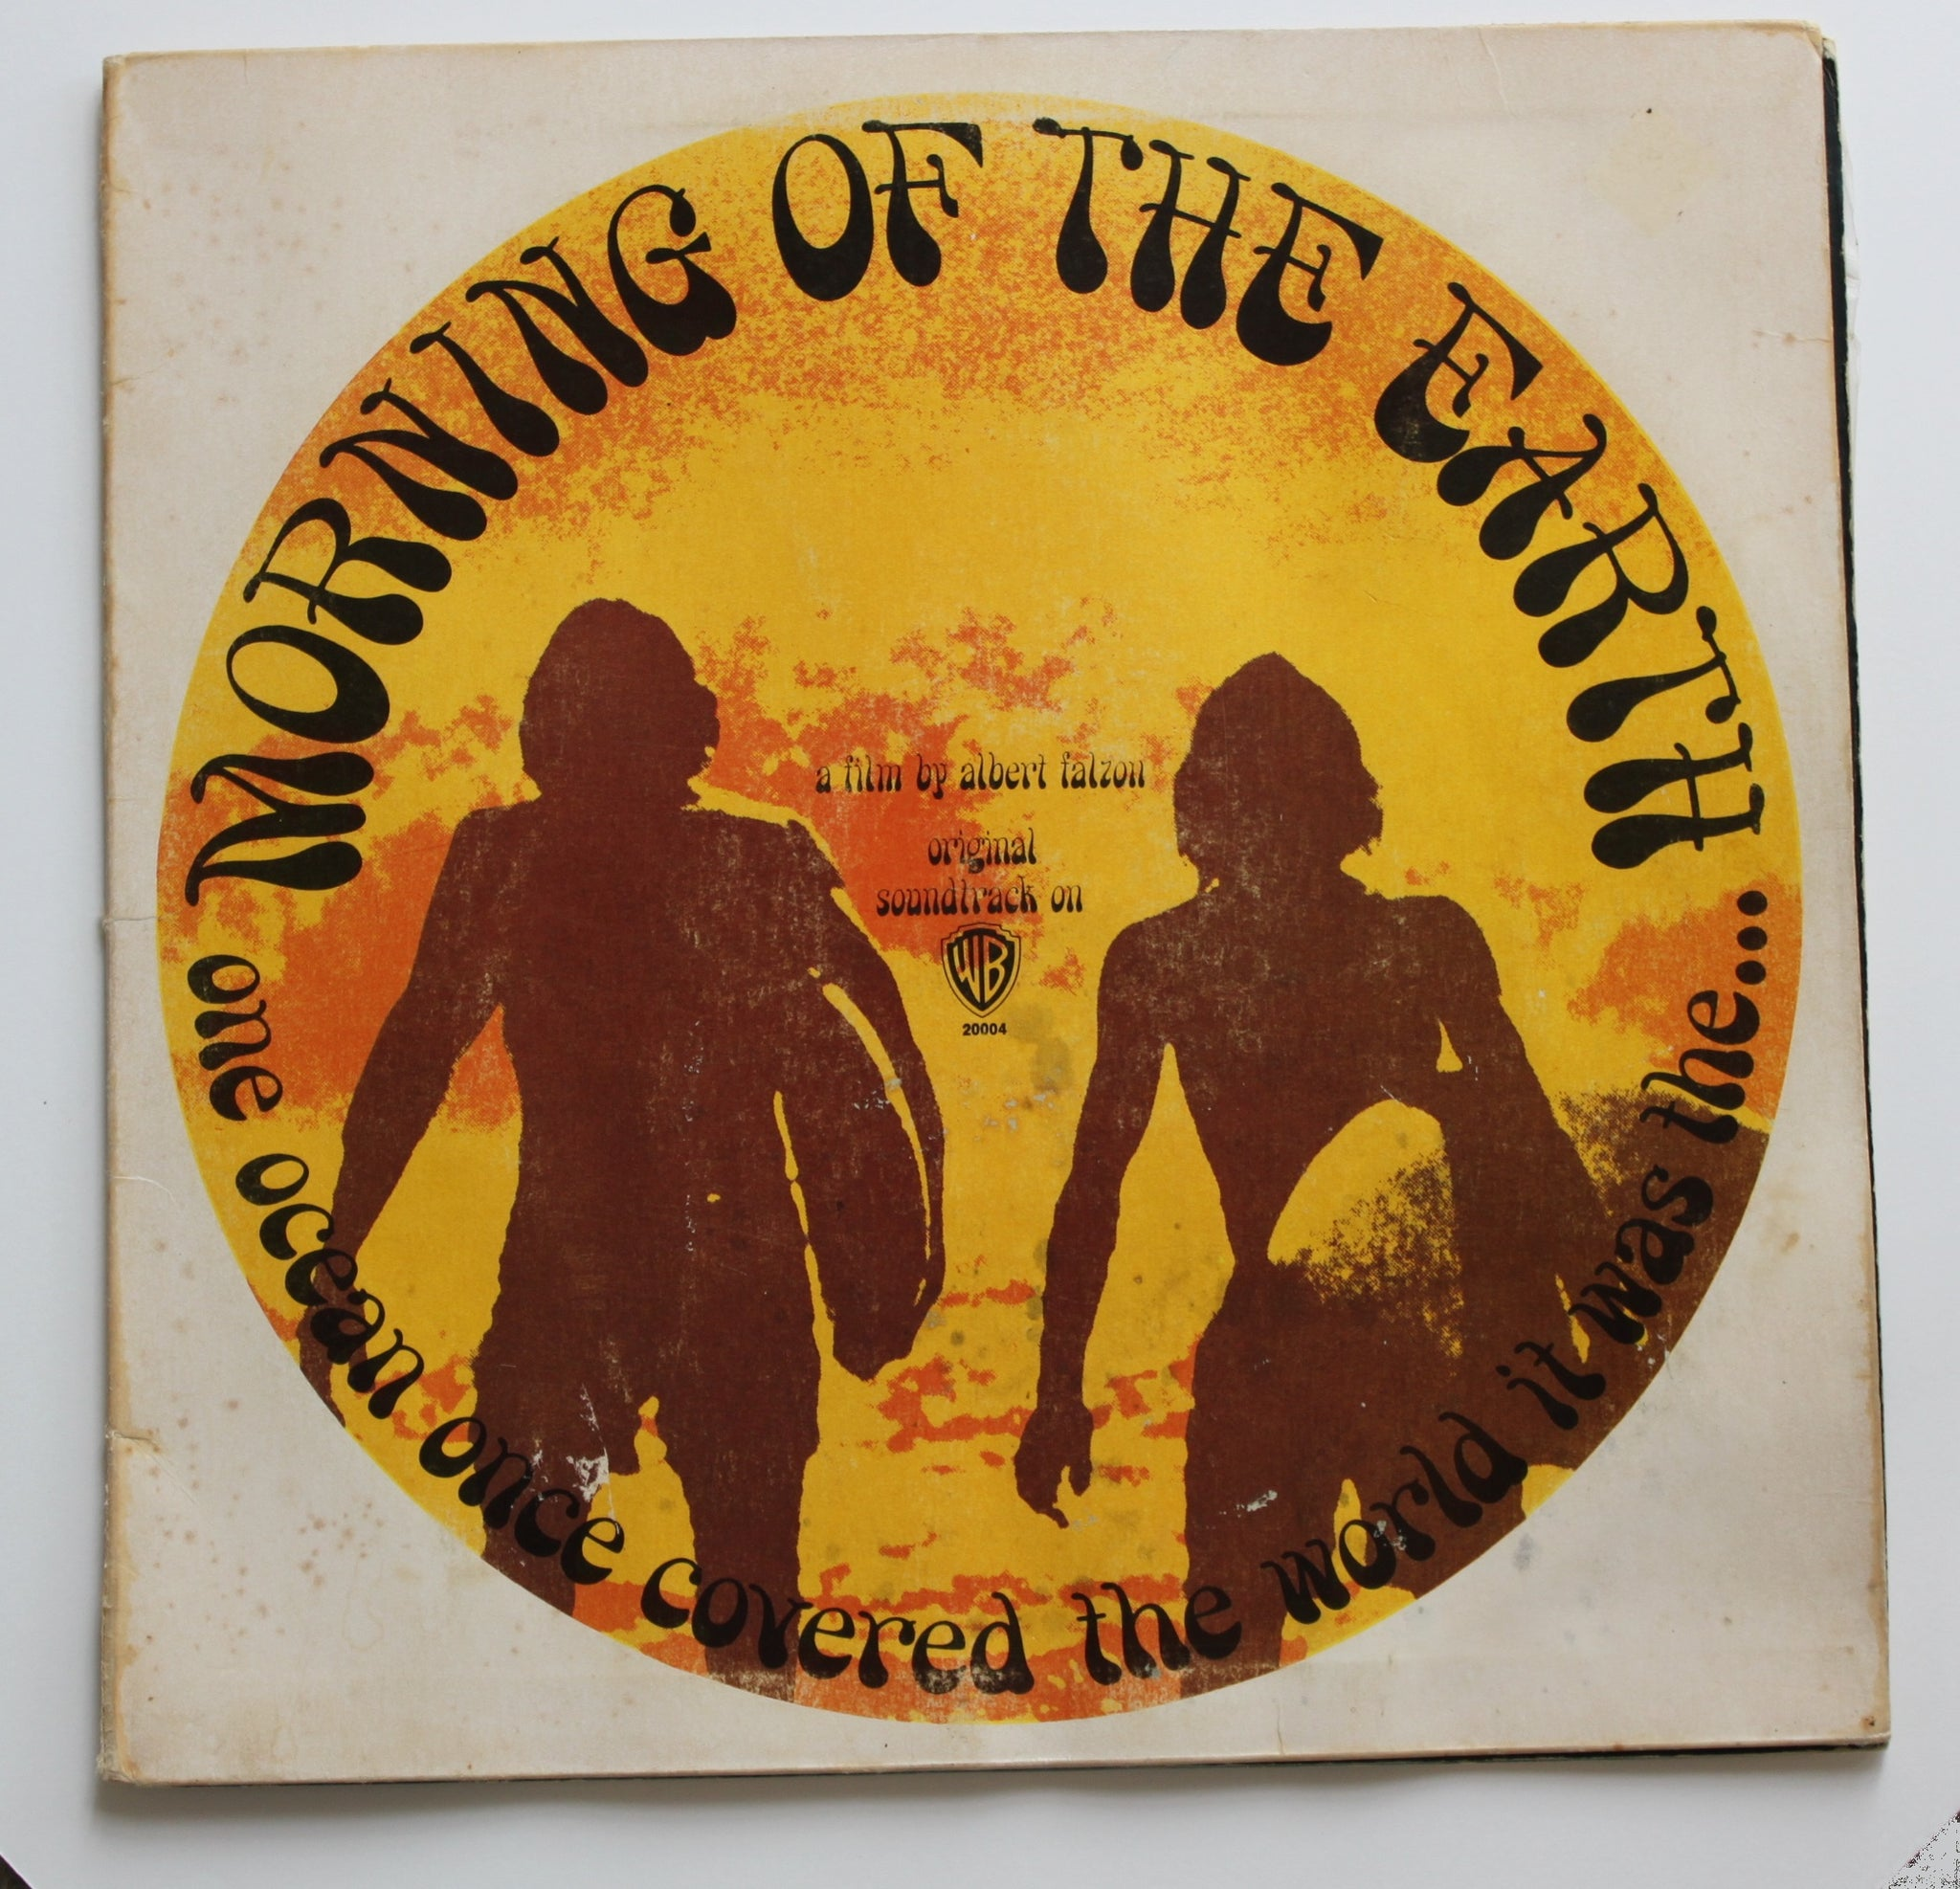 Morning of the Earth. Soundtrack album.